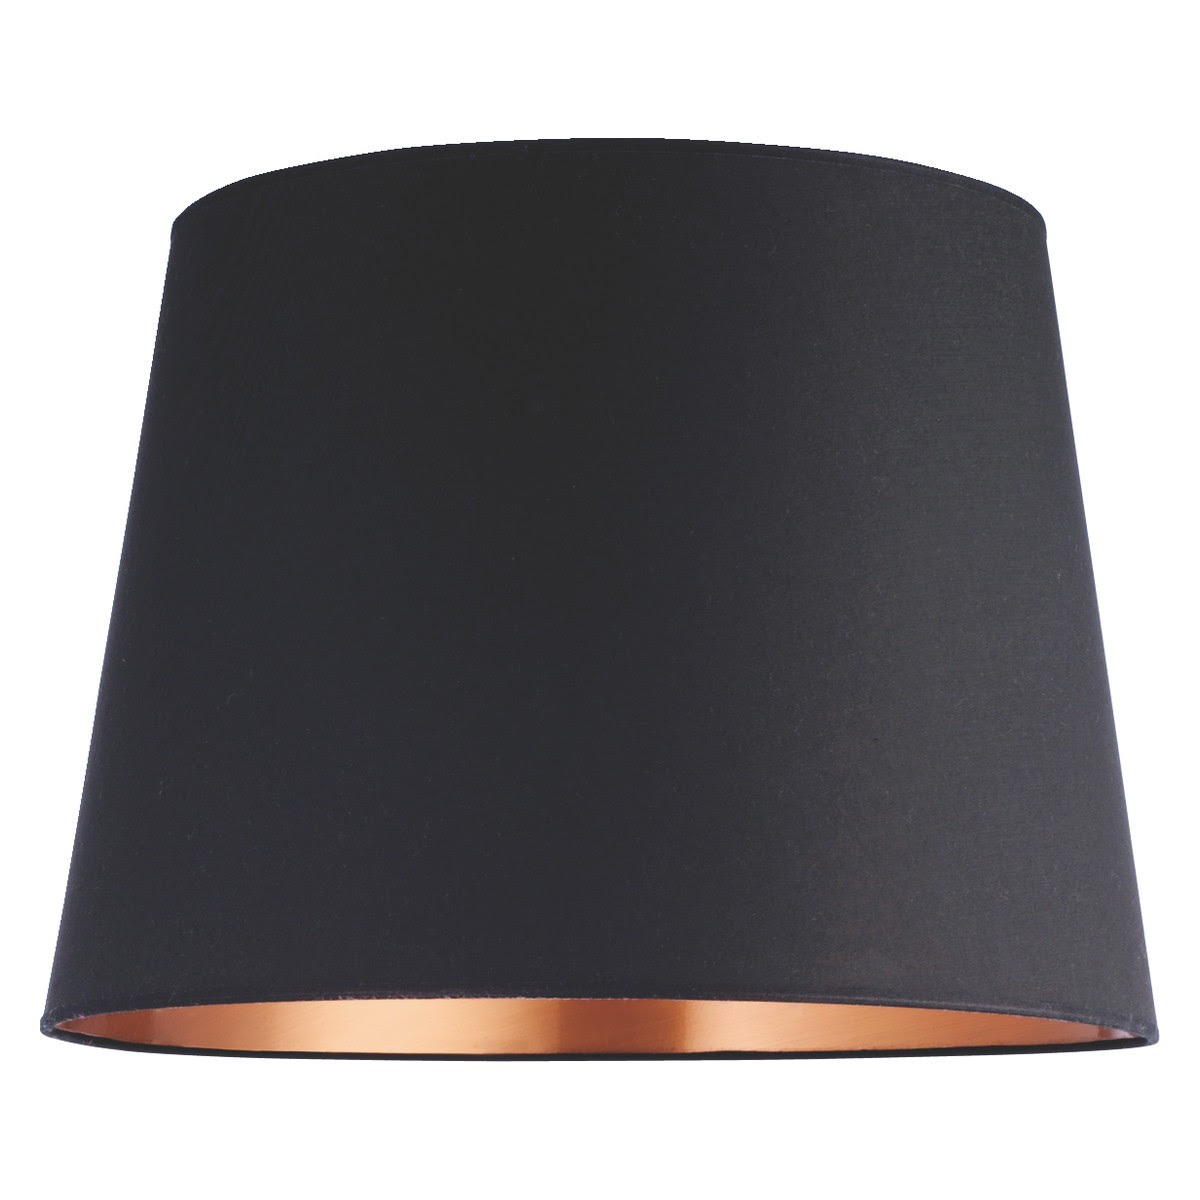 Black lampshade model for floor table or pendant lamps